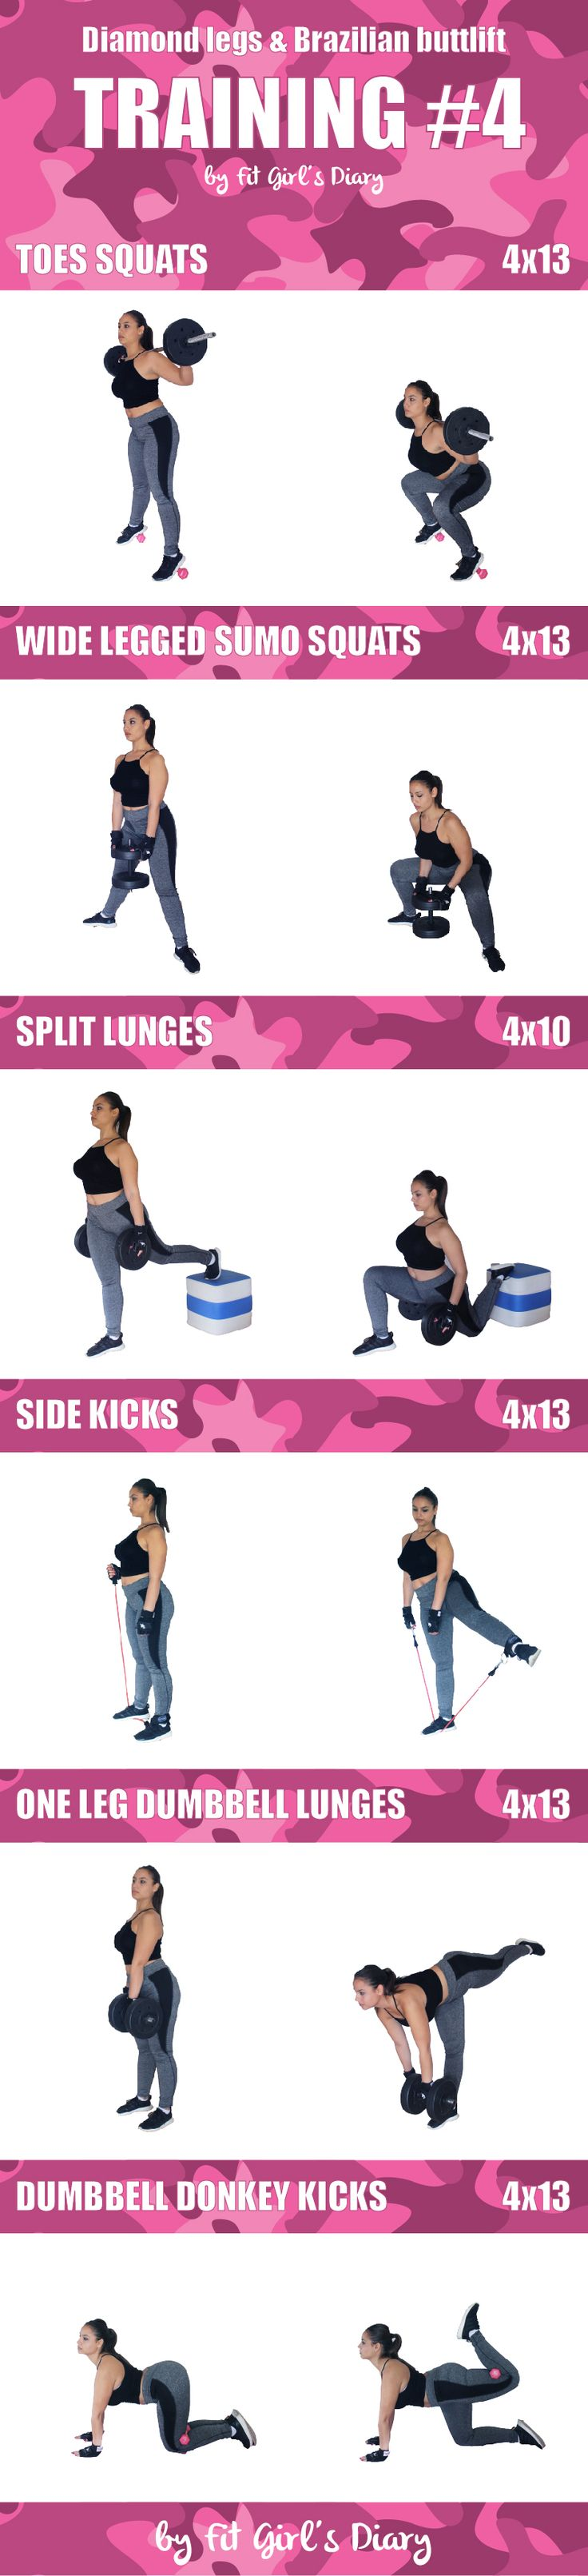 diamond-legs-and-brazilian-butt-lift-workout-30-lower-body-workouts-for-your-butt-and-legs-4